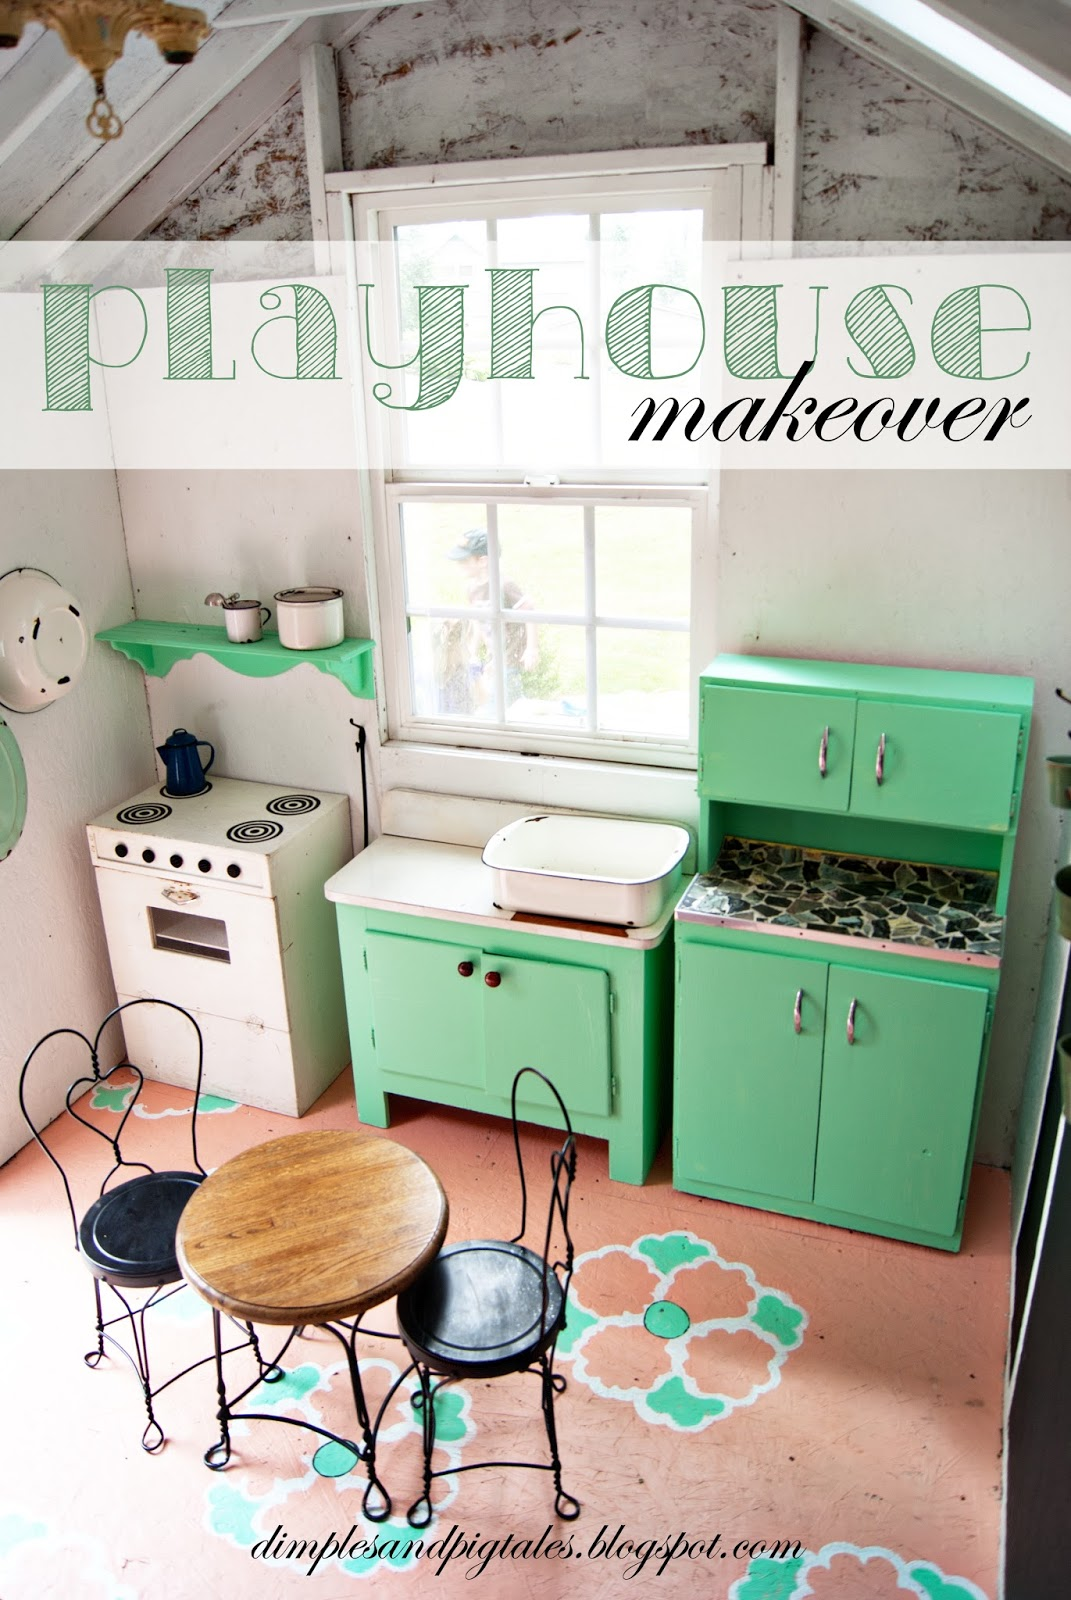 Tiny Playhouse with mint green cabinets, coral painted floor , chalkboard wainscoting and vintage accessories.